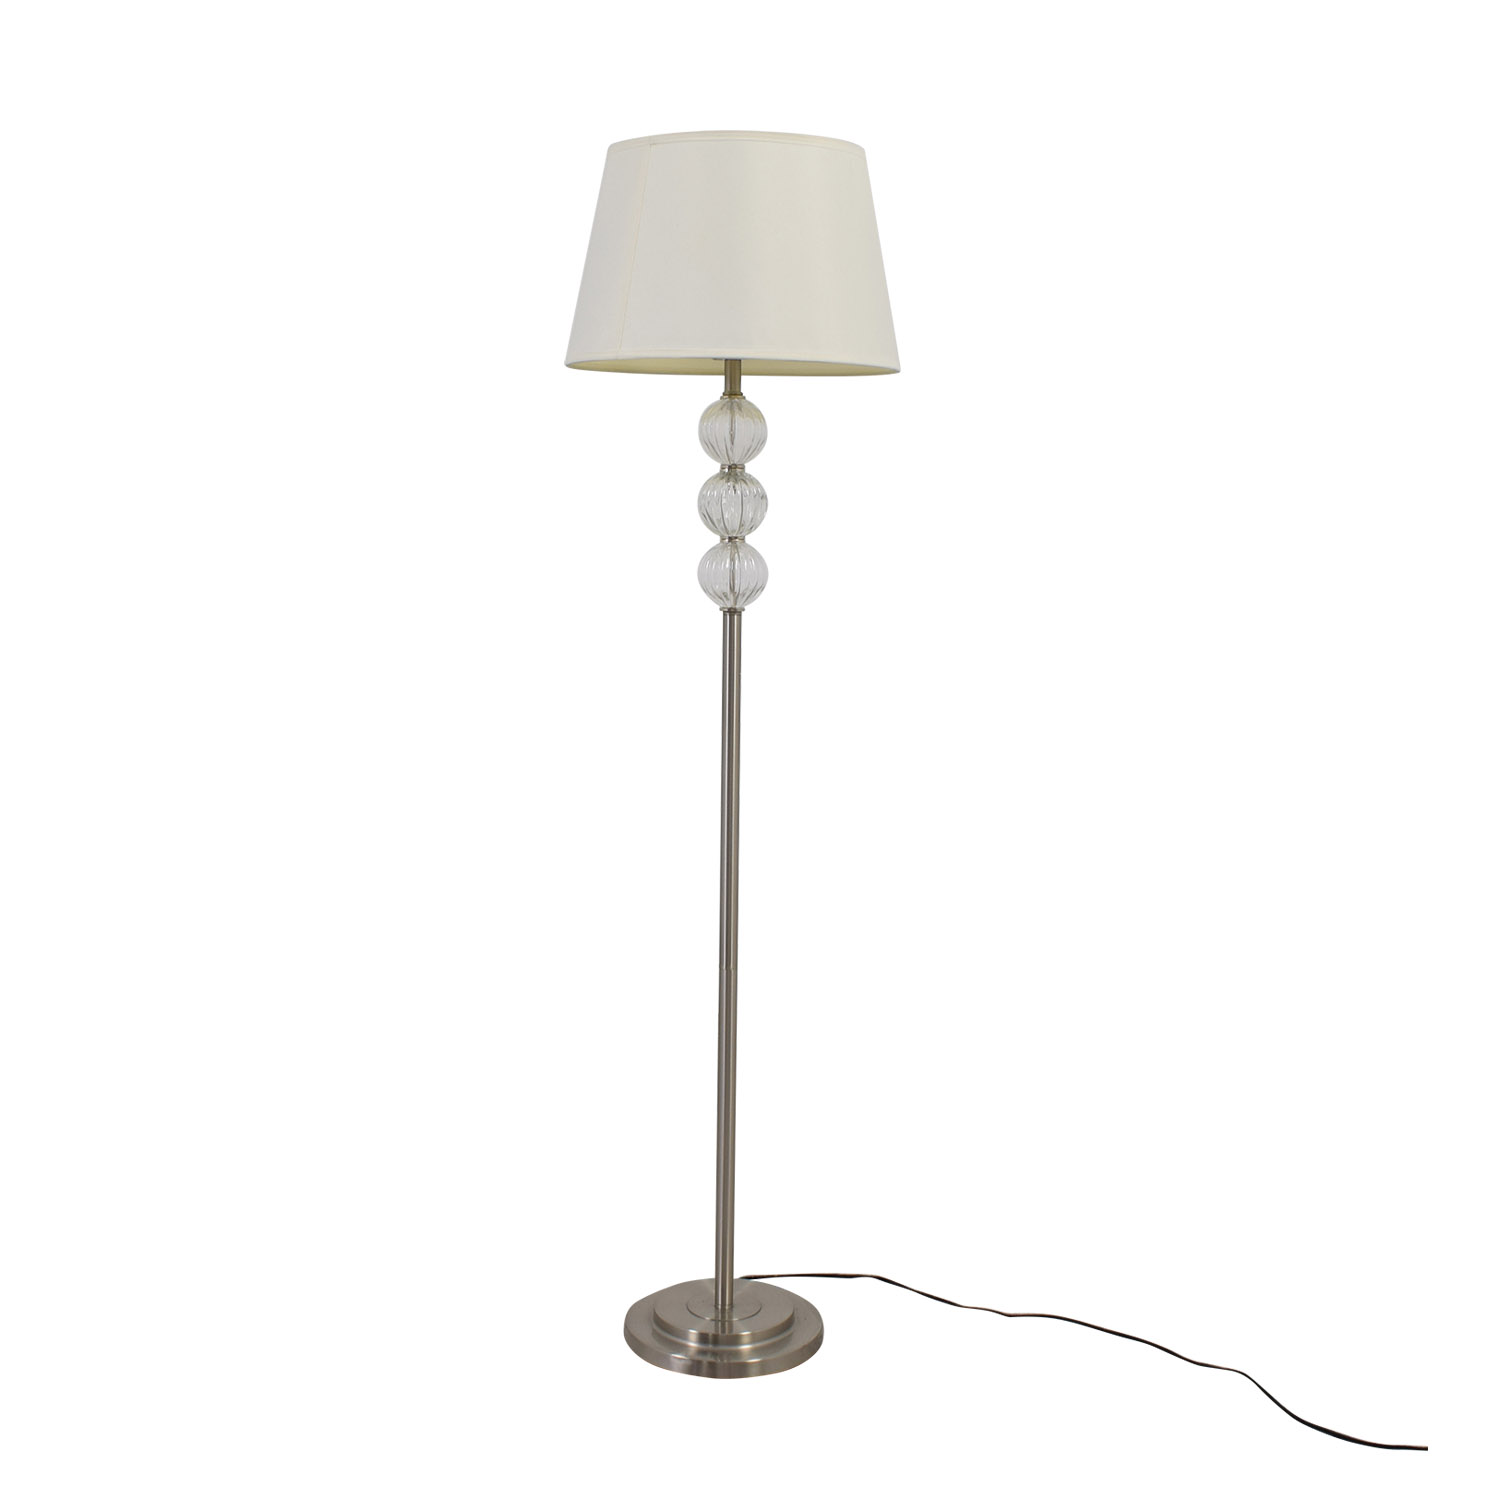 SH Lighting Ore Clear Glass Globes and Metal Floor Lamp sale